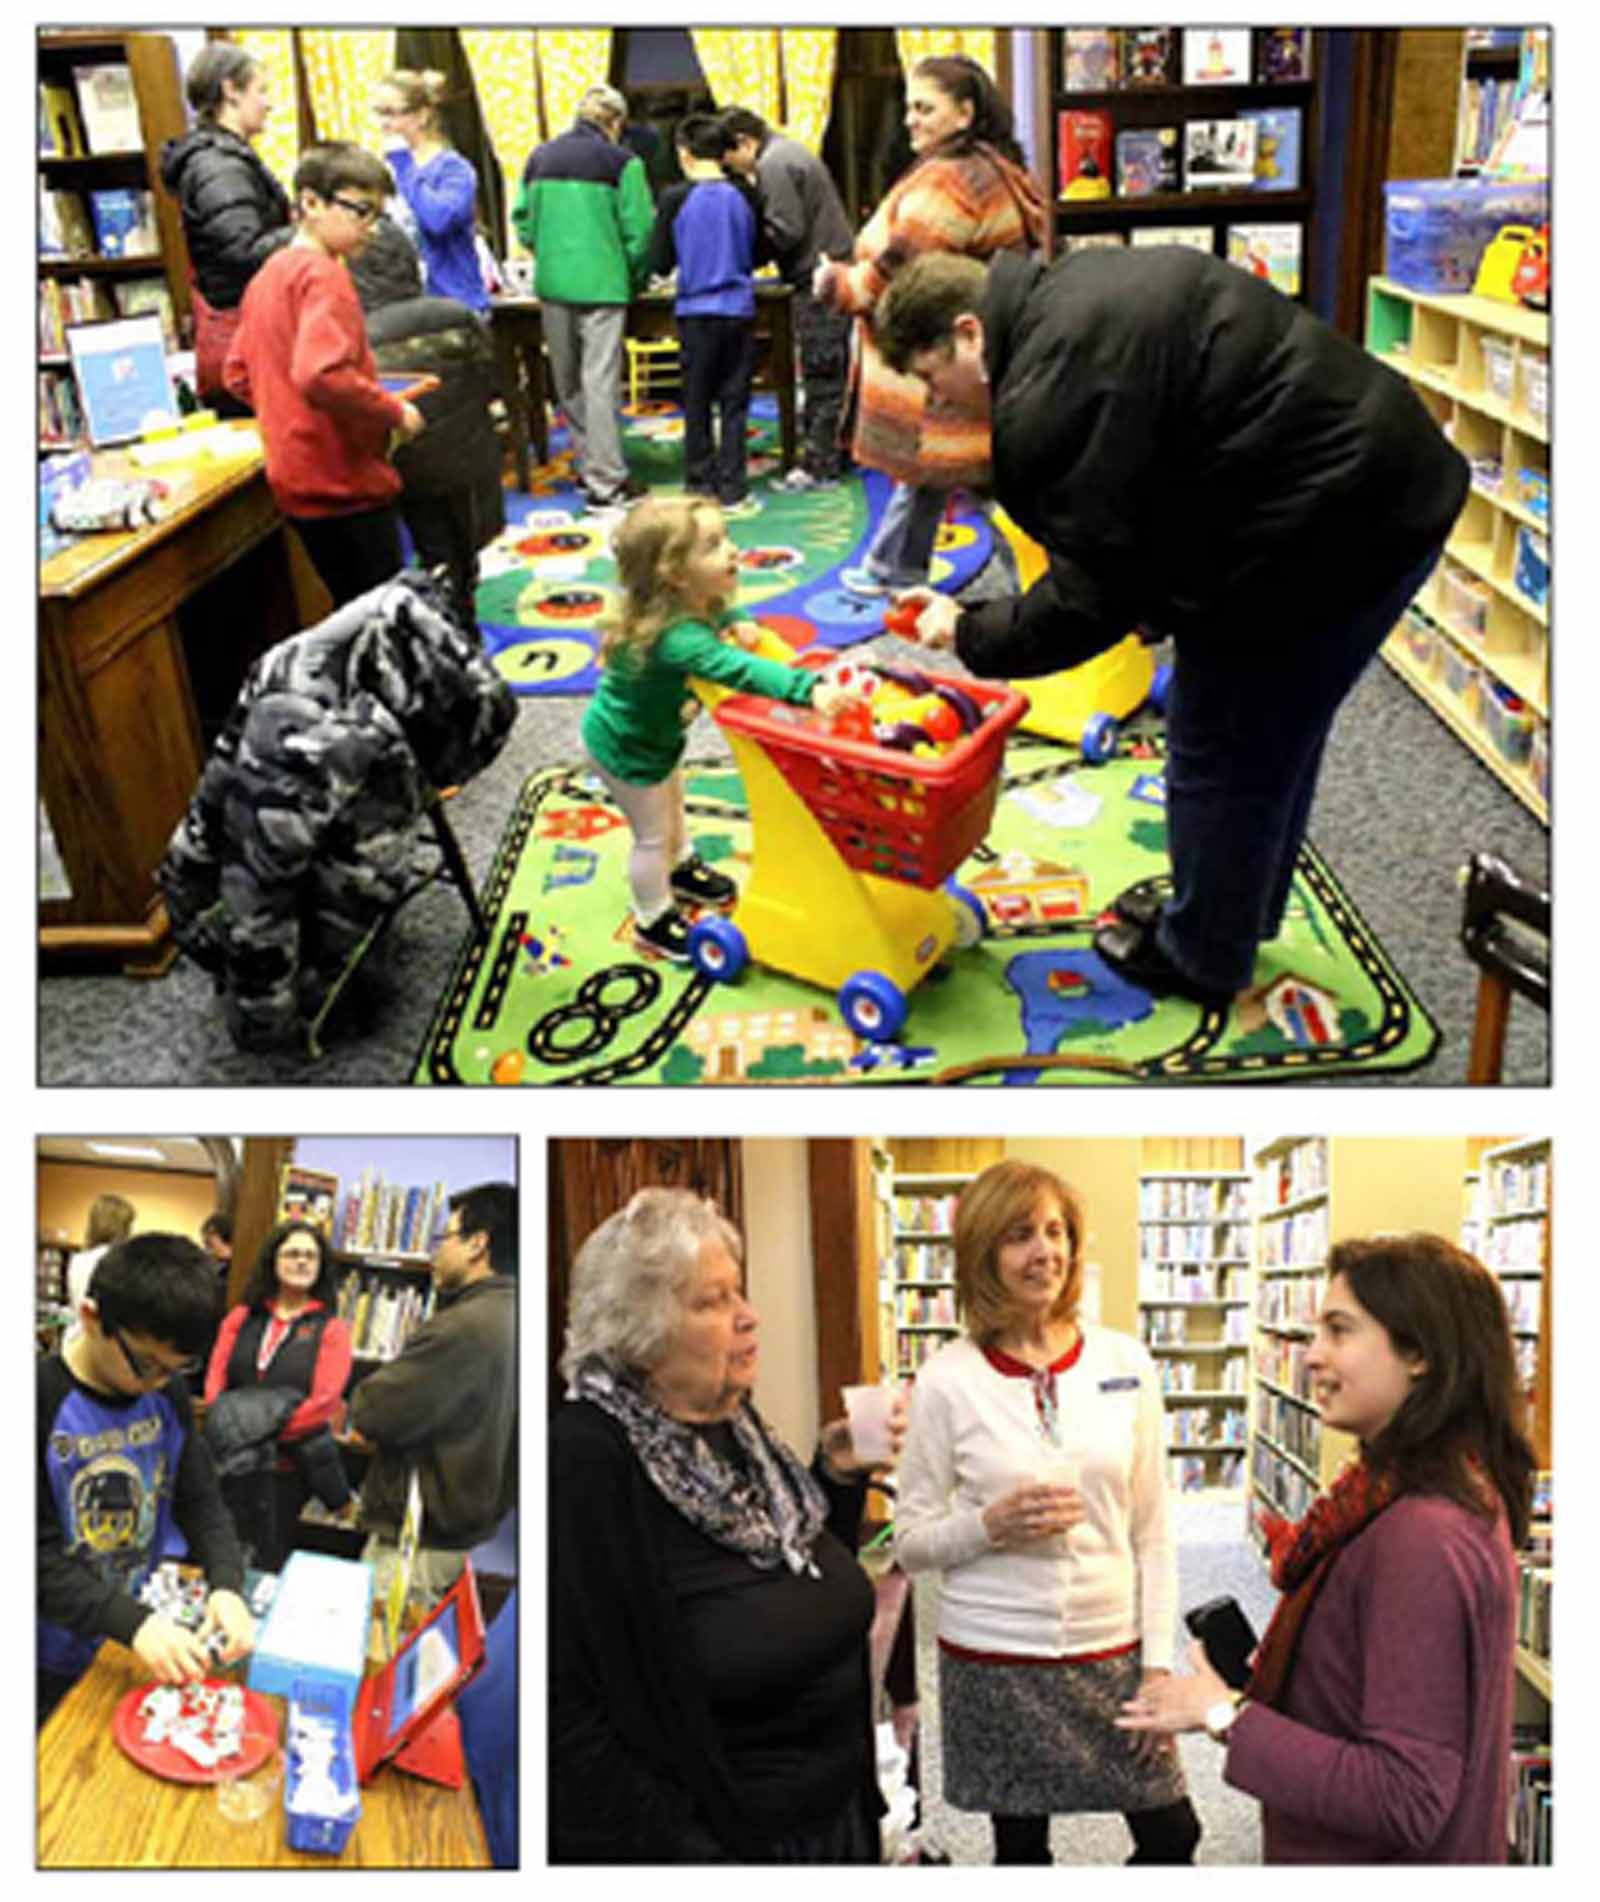 The sound of excited young voices reverberated through Oneonta's Huntington Memorial Library last evening at an open house to celebrate the opening of the new children's room. Youngsters tried their hand as Spero, littleBits, Moss Robot and other learning toys. In top photo, Jennifer Sorensen chats with a busy, busy Charlotte Wiltsey, 2. At left, Tyler Sorensen tries out one of the new offerings as dad Aaron, in background, discusses the new facility with Karen Laing. At right, Library Director Tina Winstead discusses the new facility with Karyl Sage, left, and Rachel Ashara. Rachel, raised in Oneonta (and now living in North Andover, Mass., with her husband and two children) recalled her happy experiences at the library when she was growing up. Home visiting family, she brought son Devan to the open house. (Jim Kevlin/AllOTSEGO.com)